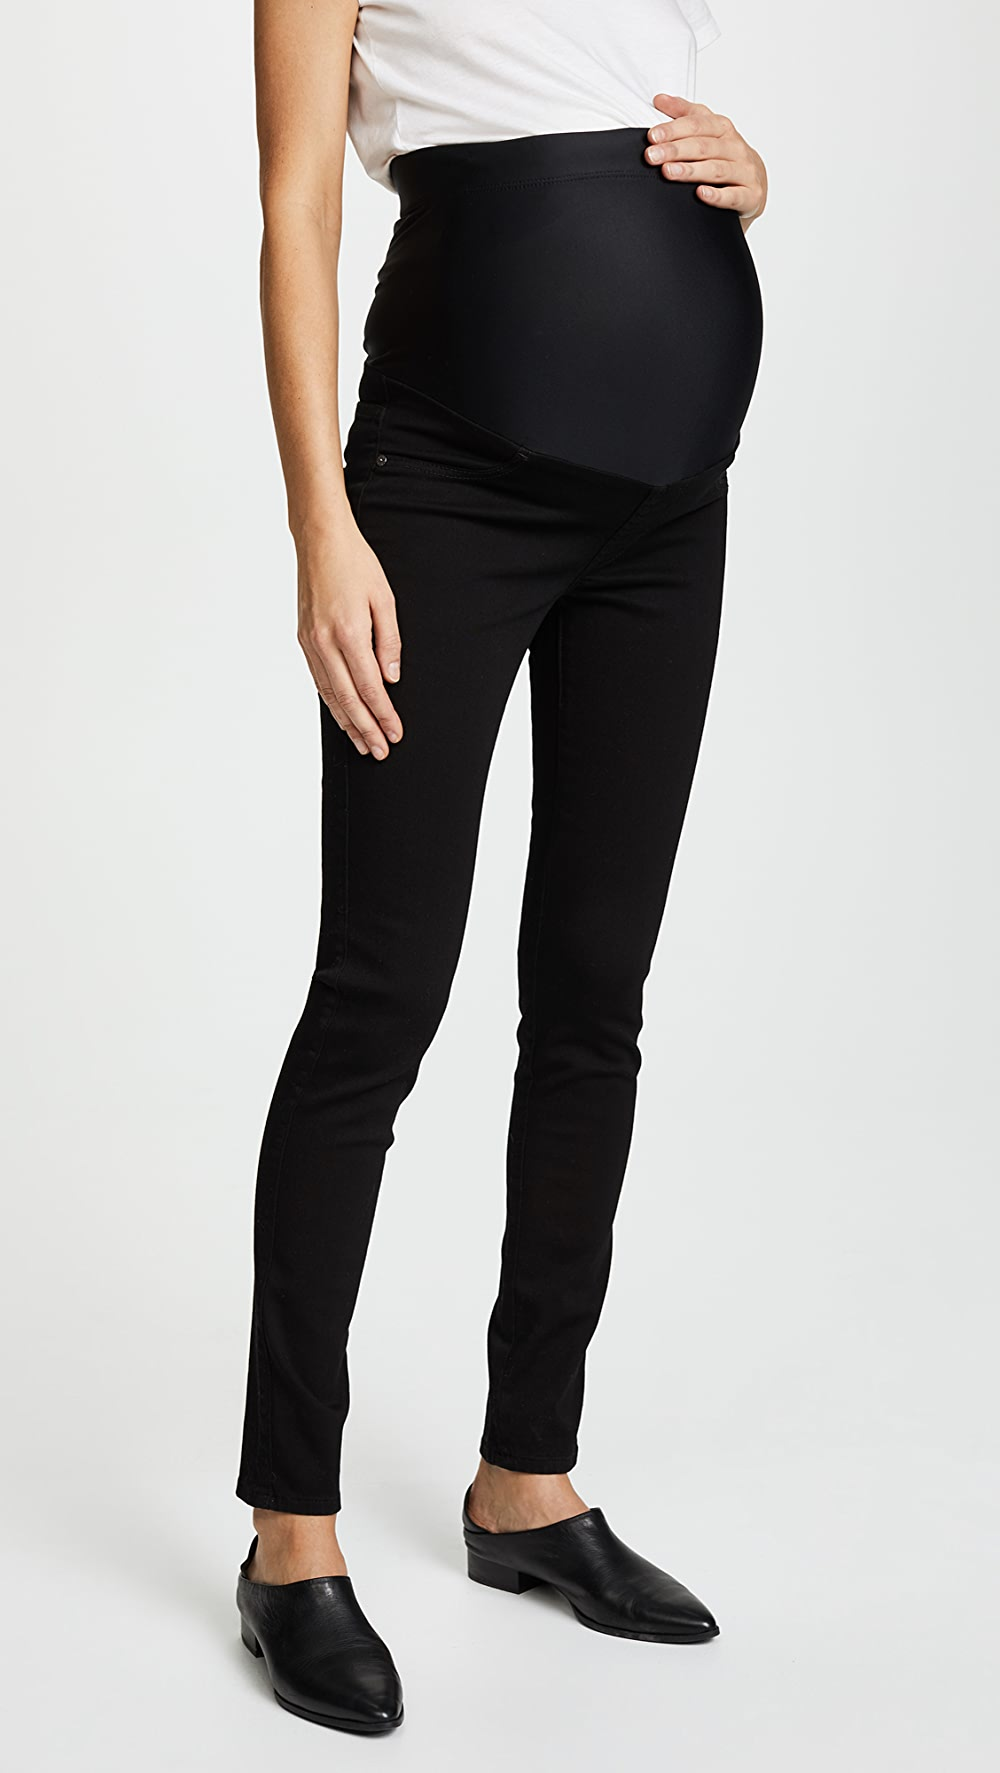 Search For Flights James Jeans - Twiggy Maternity Skinny Jeans Promoting Health And Curing Diseases